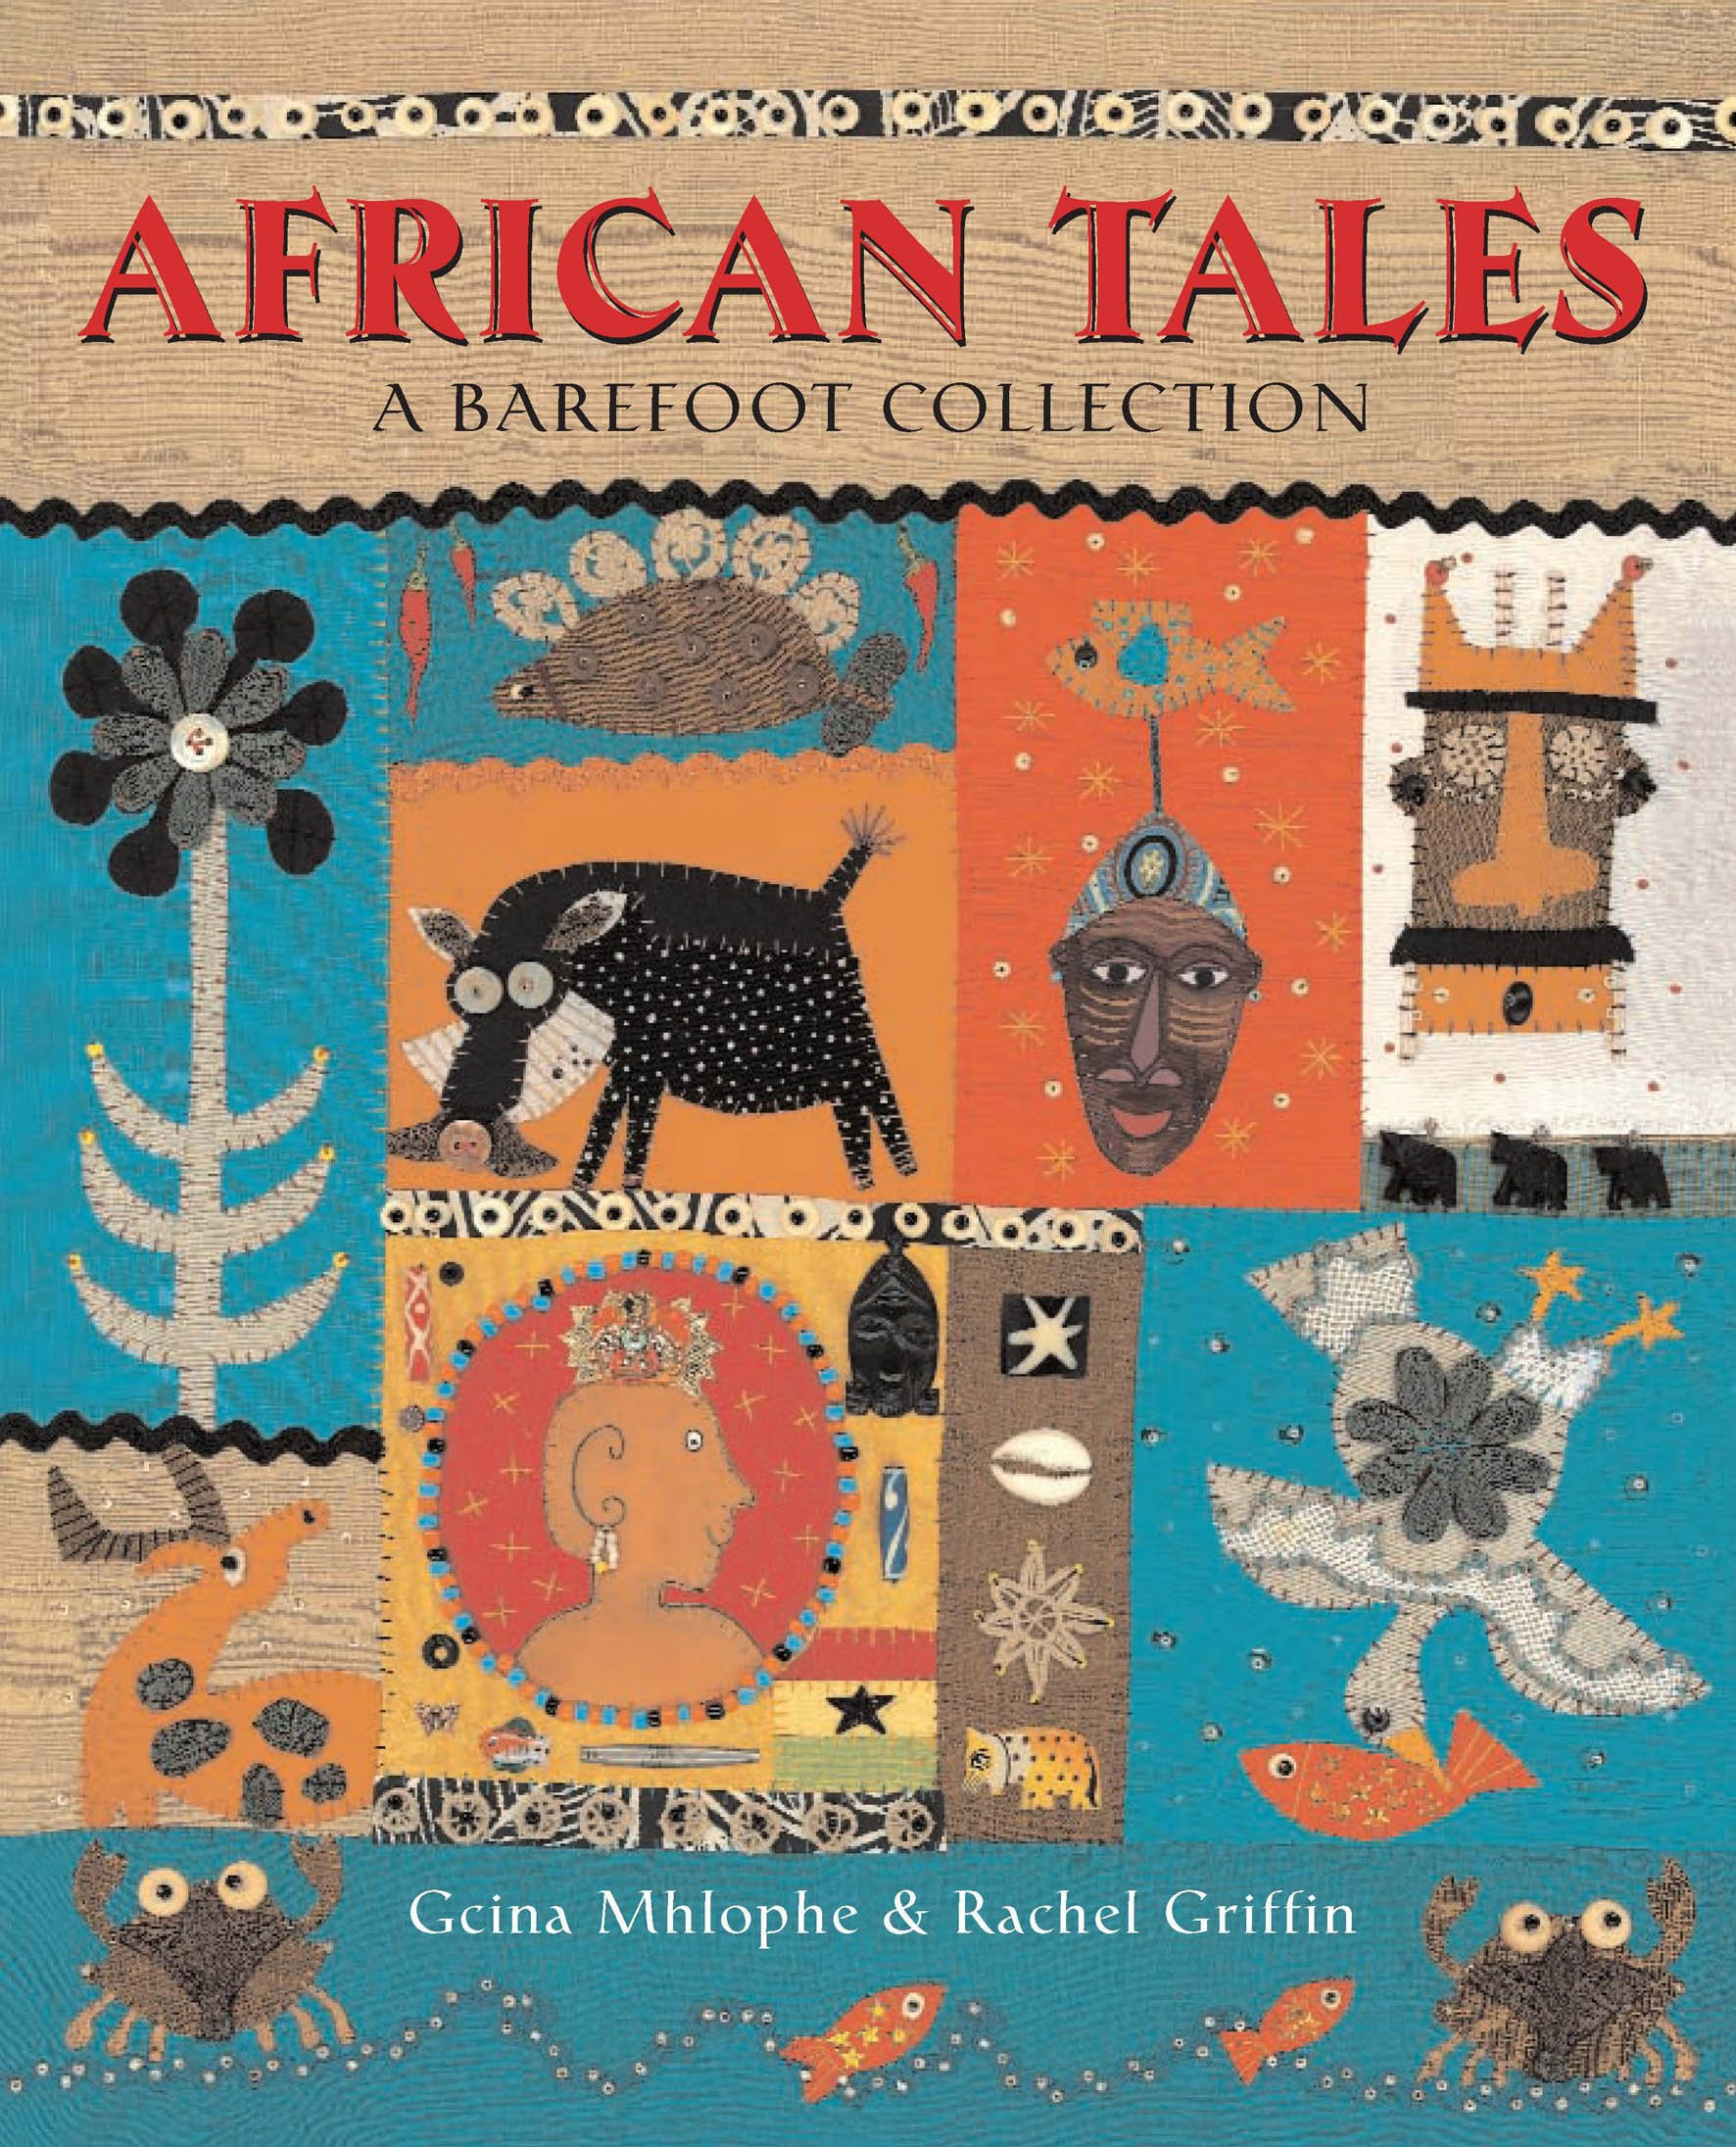 Image result for African tales